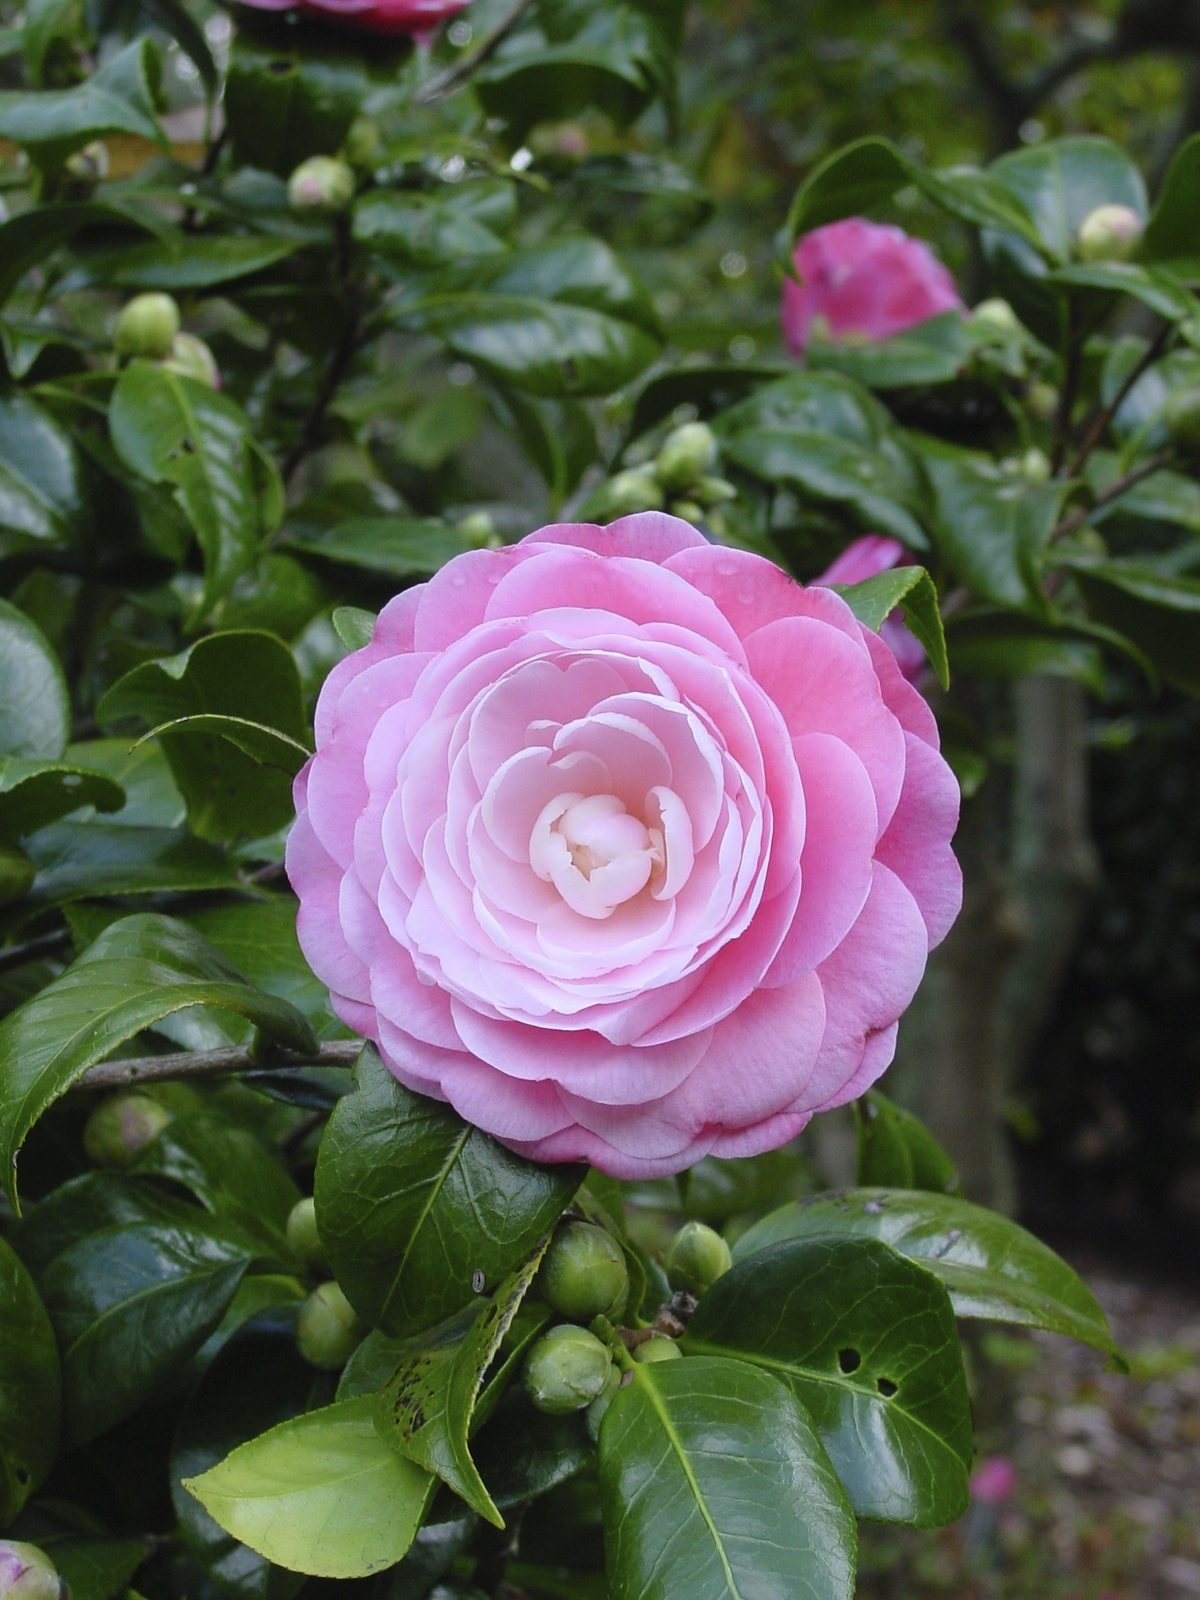 Providing Tree And Plant Care: How To Care For A Camellia Plant